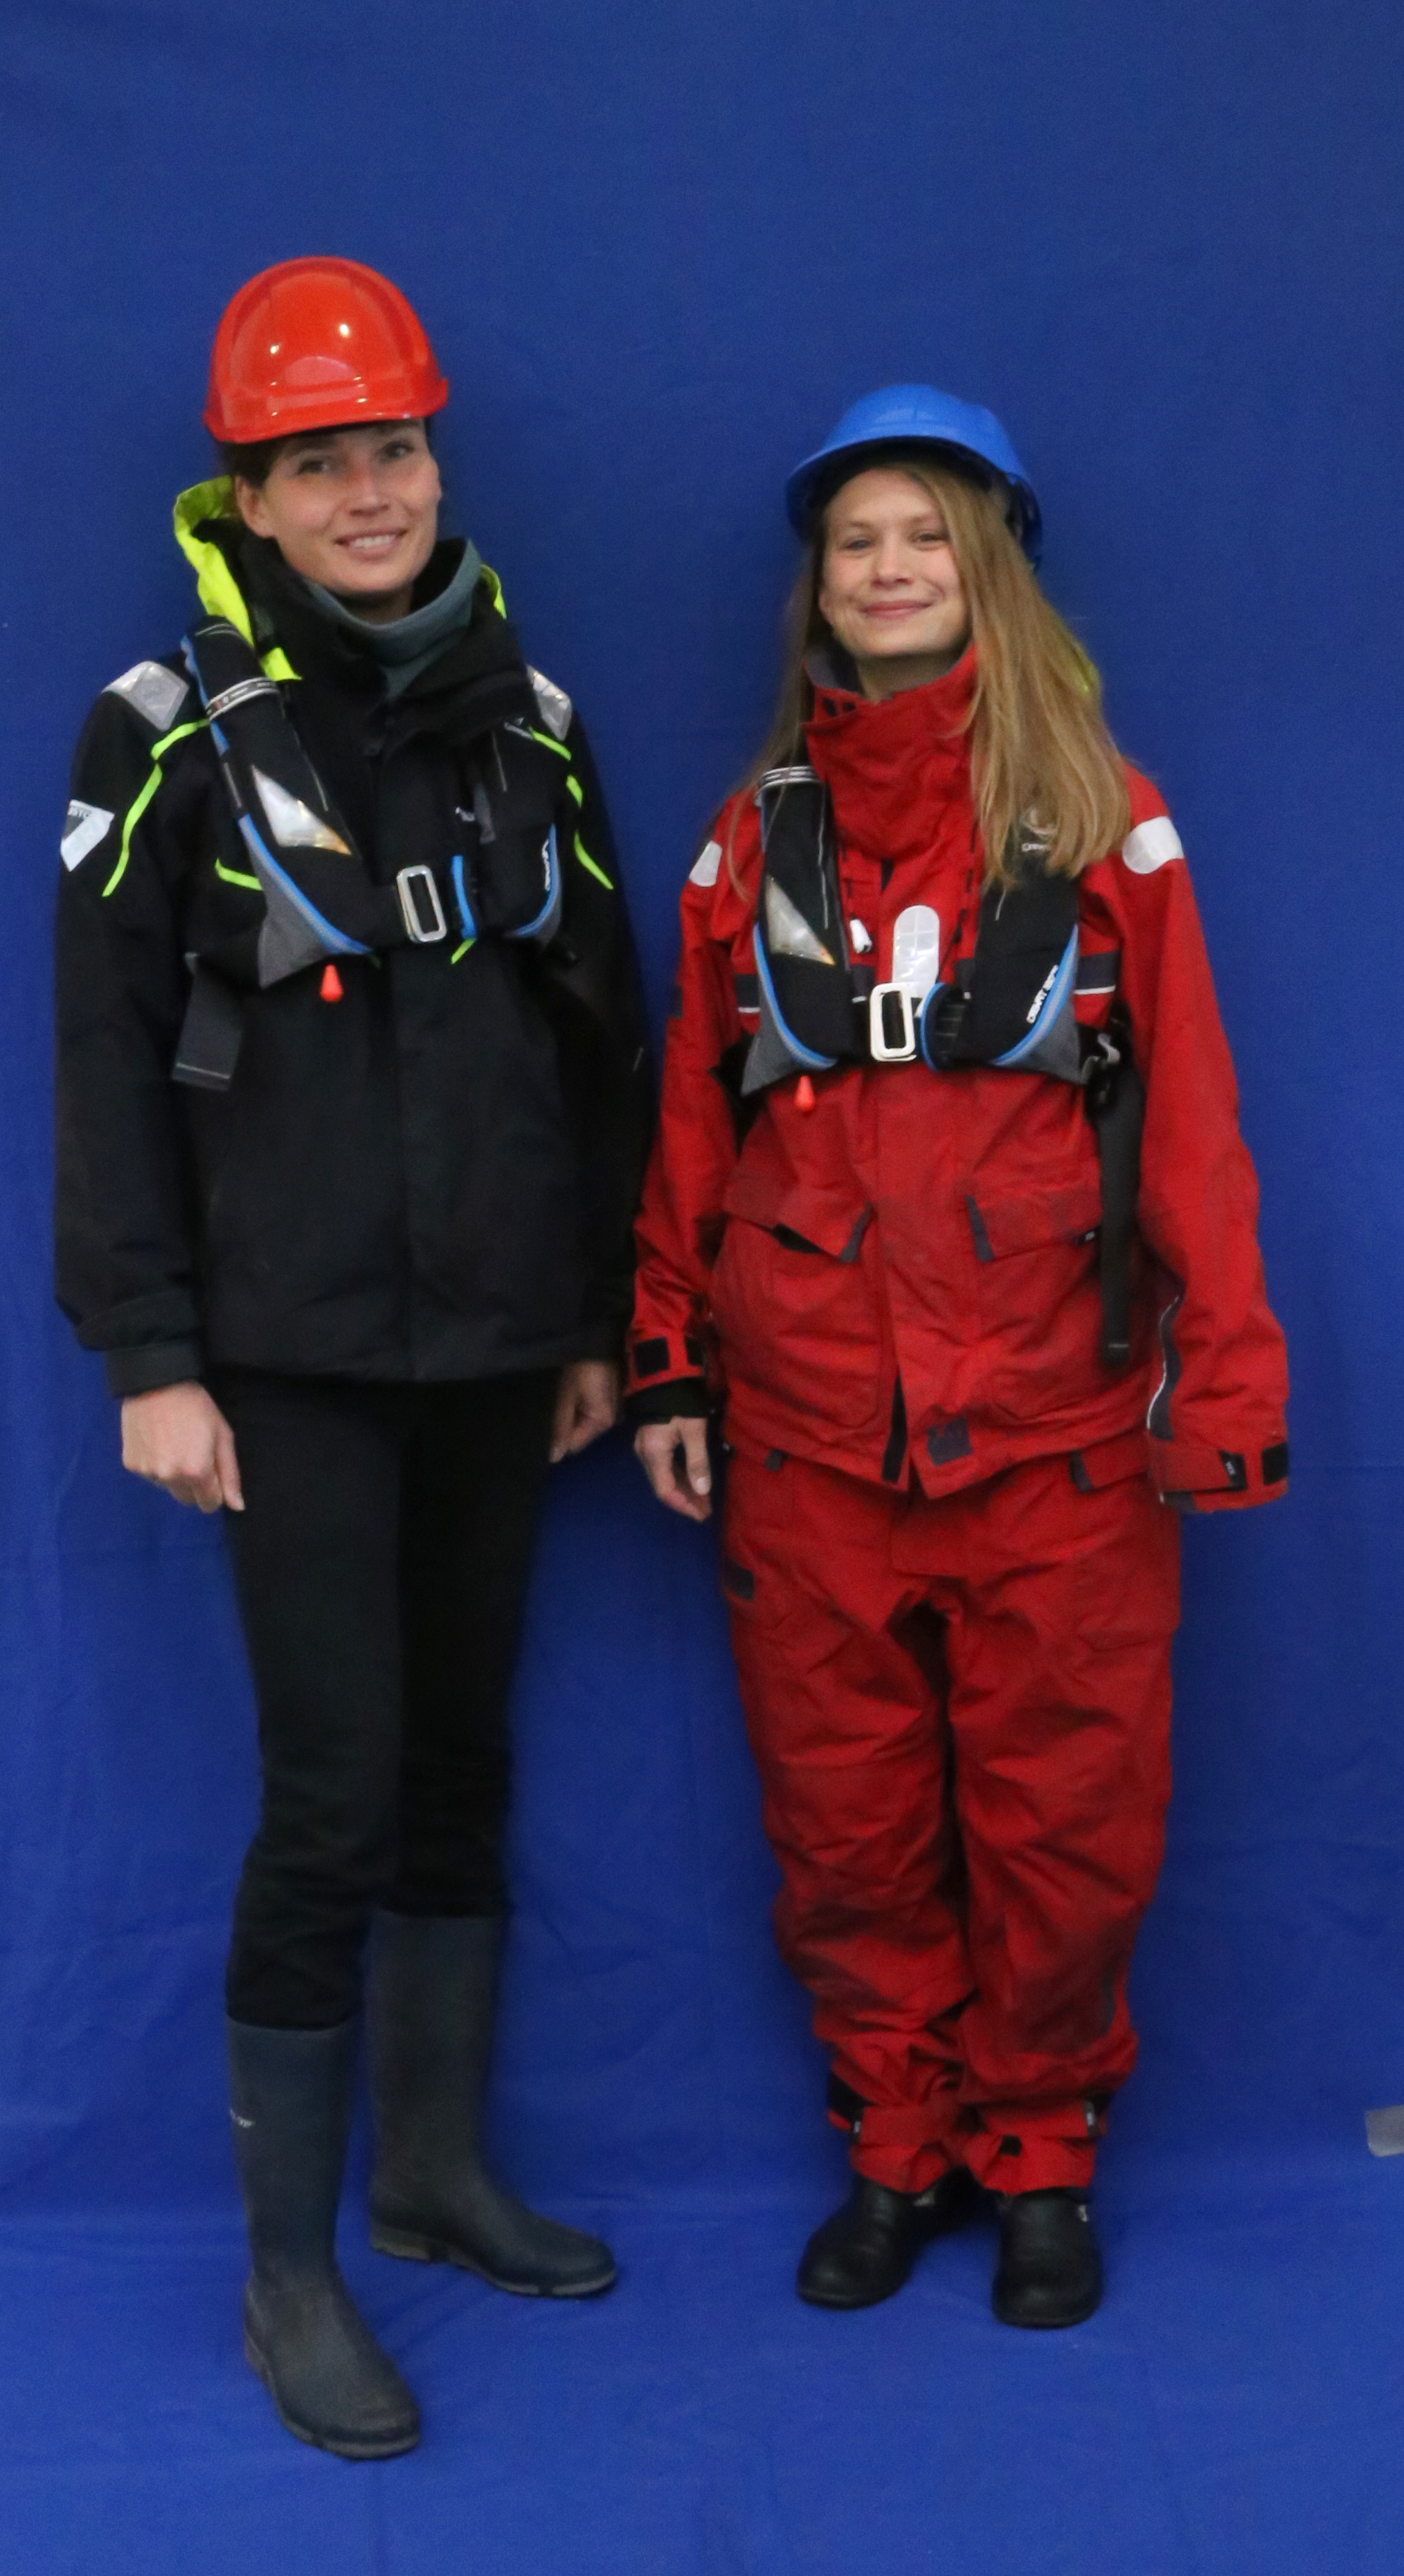 Anneke and Leonie as Oceanographers, photo taken by Claire Riordan